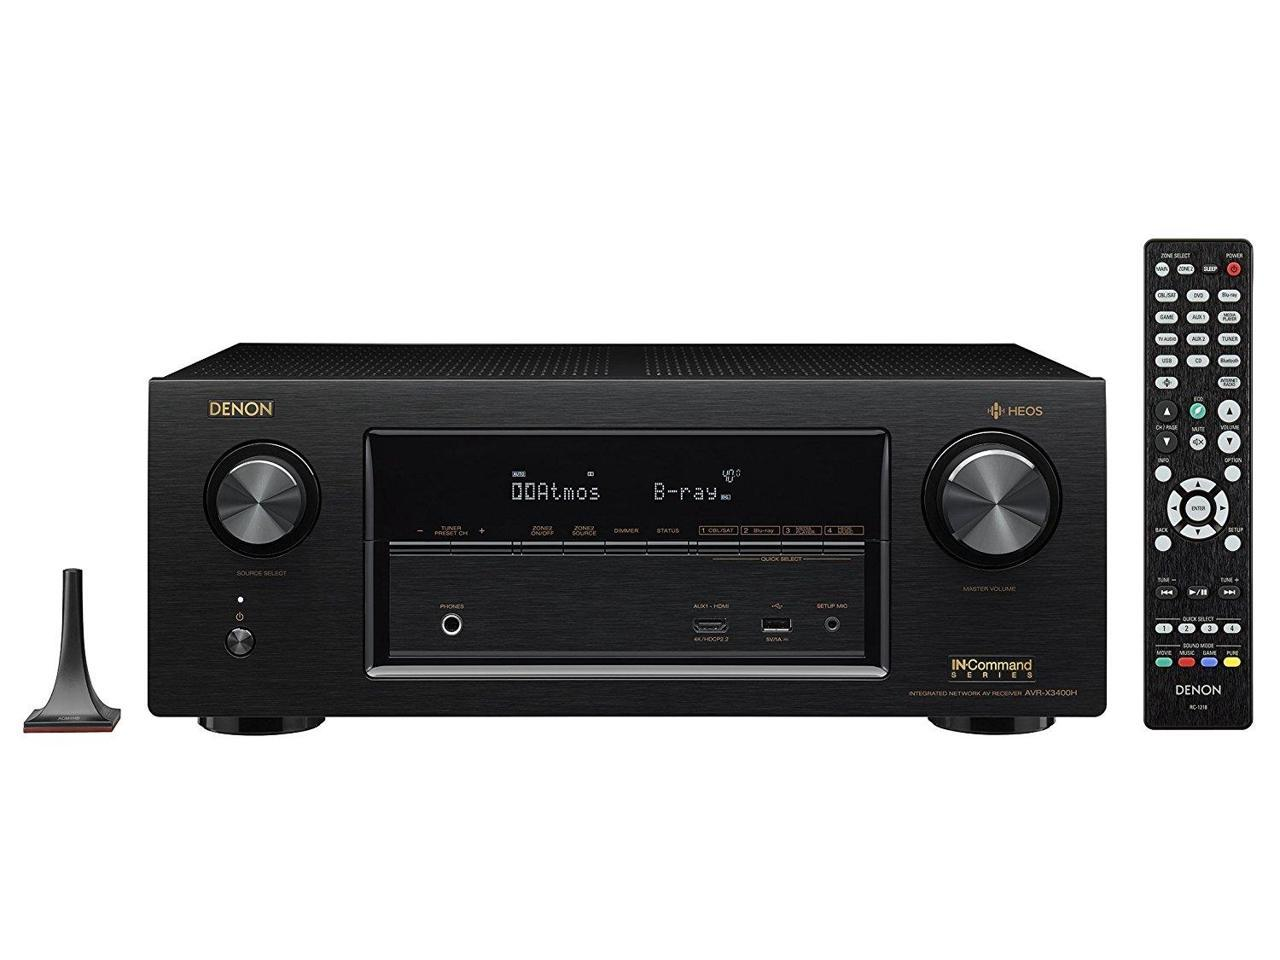 Denon AVR-X3400H 7.2 Channel Full 4K Ultra HD Network 4K Receiver with HEOS with $50 Gift card